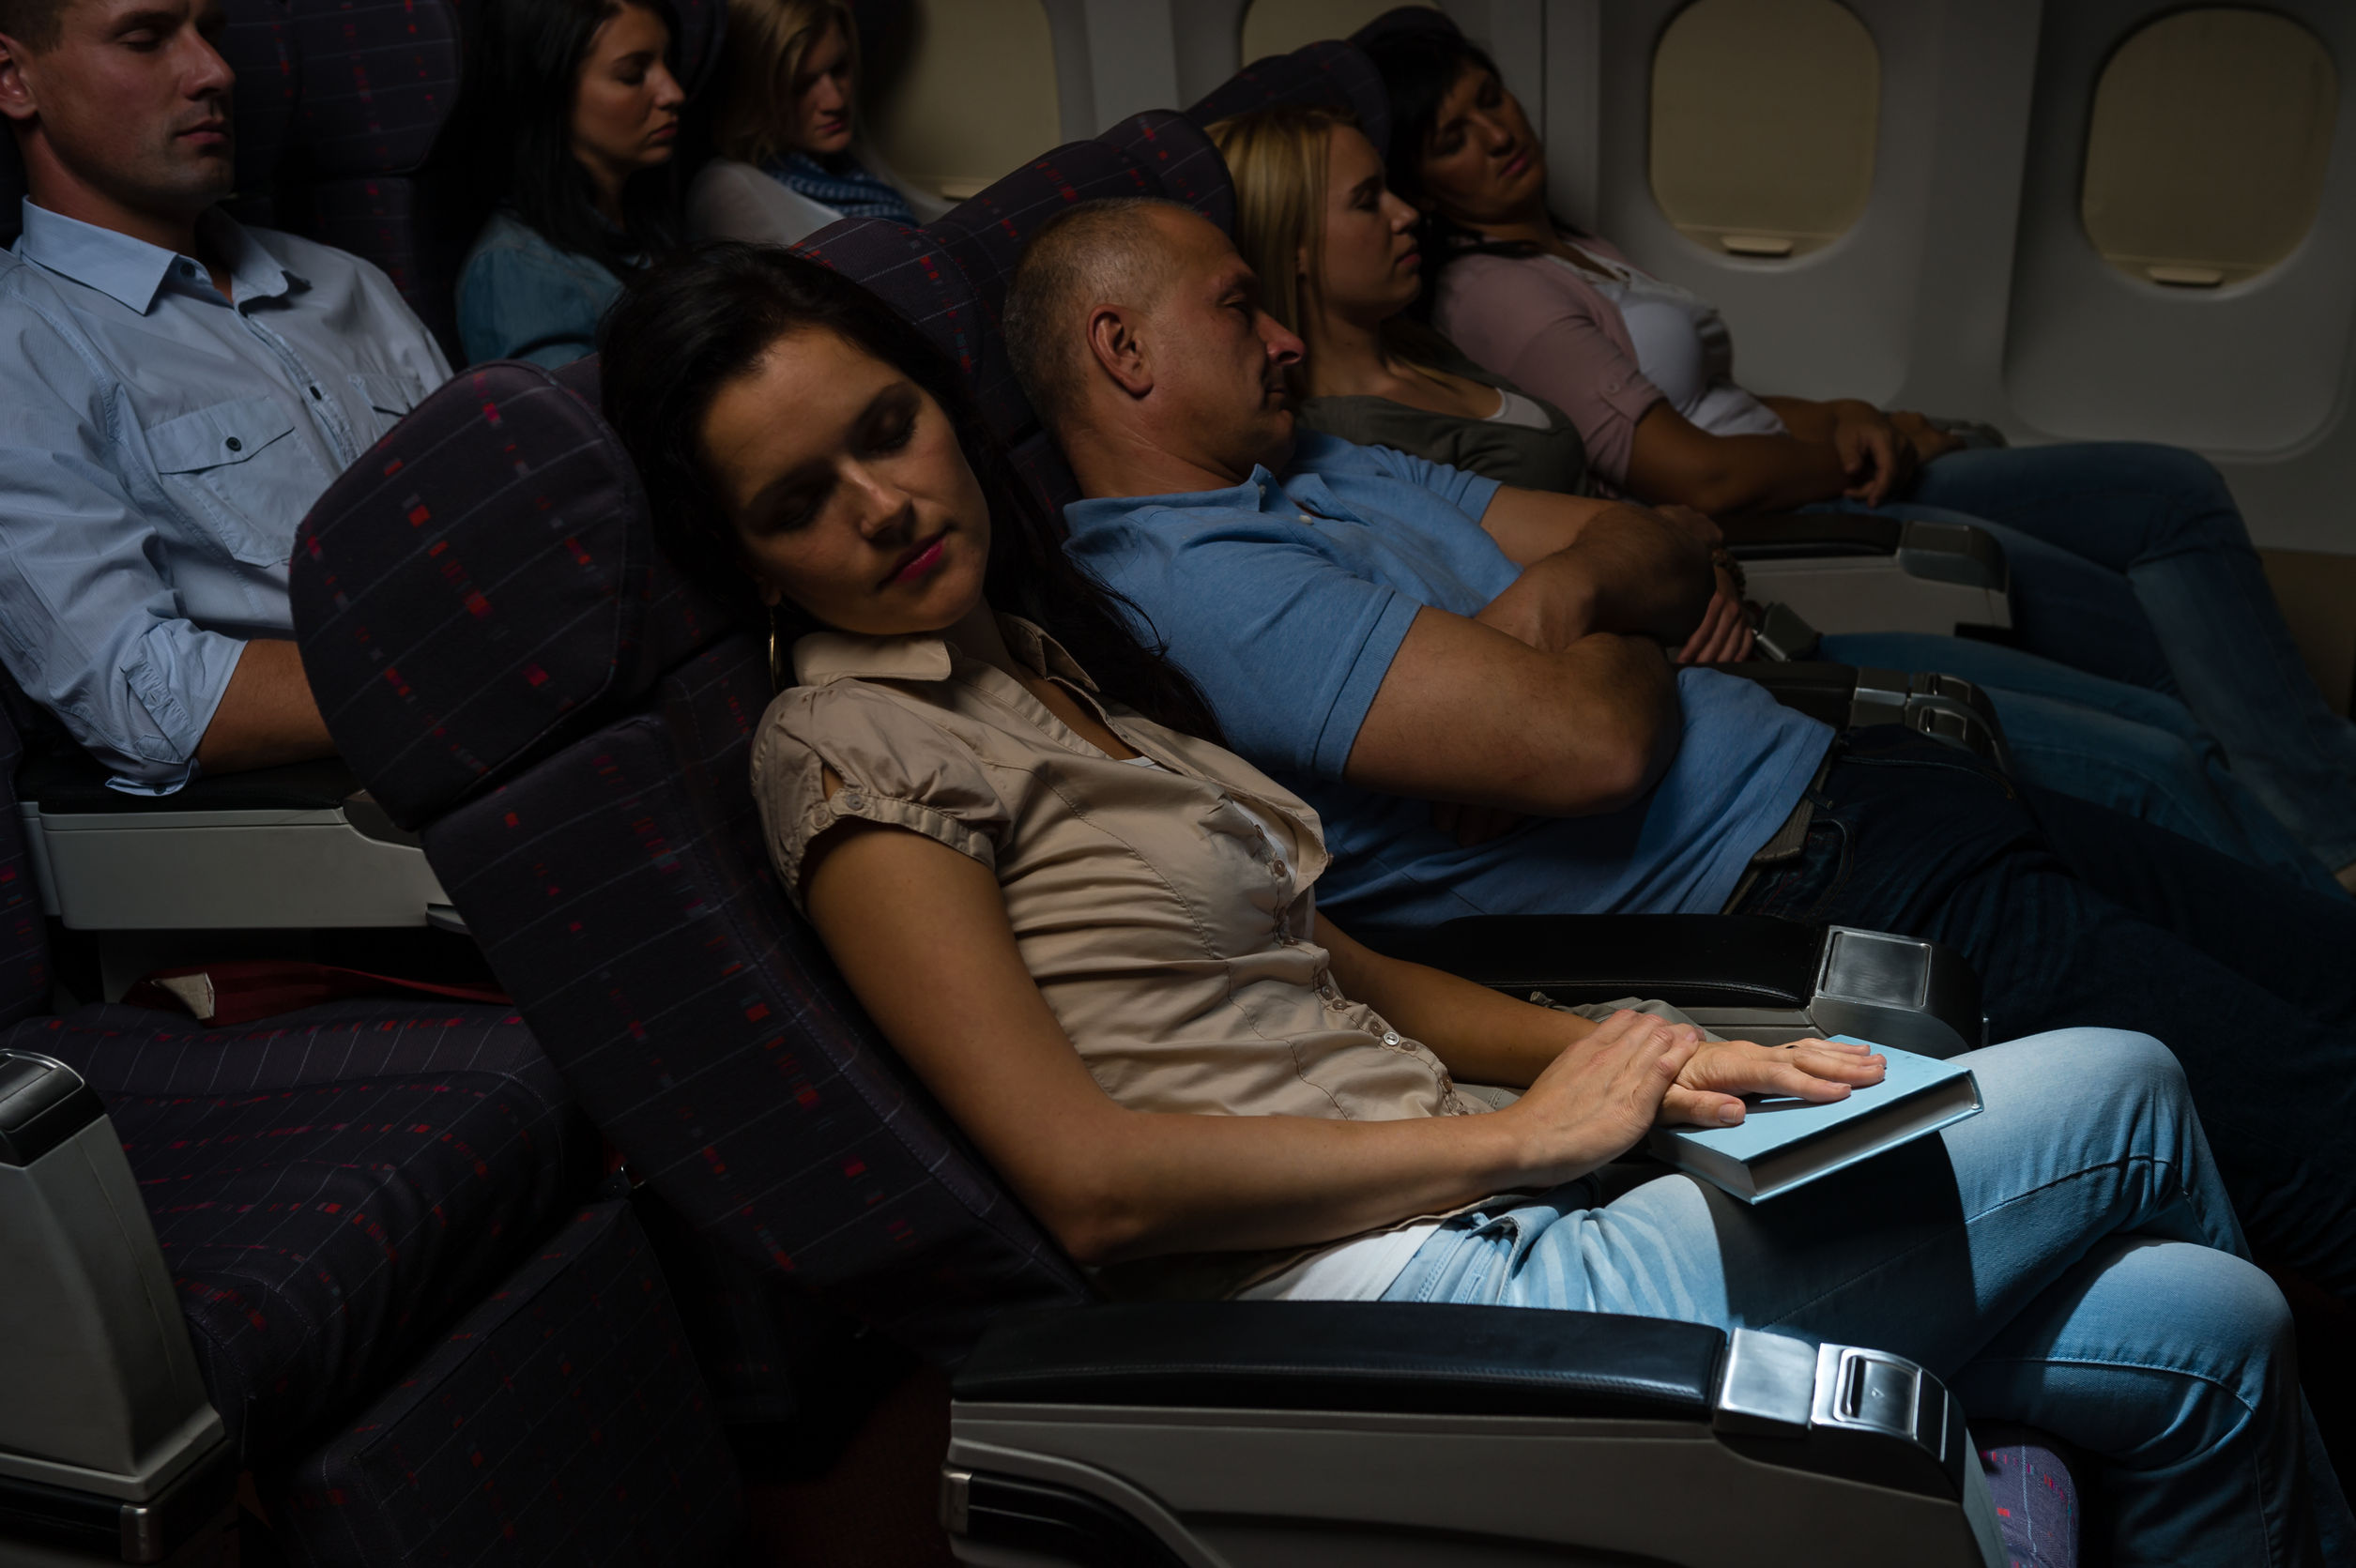 23714529 - flight passengers sleeping plane cabin night travel